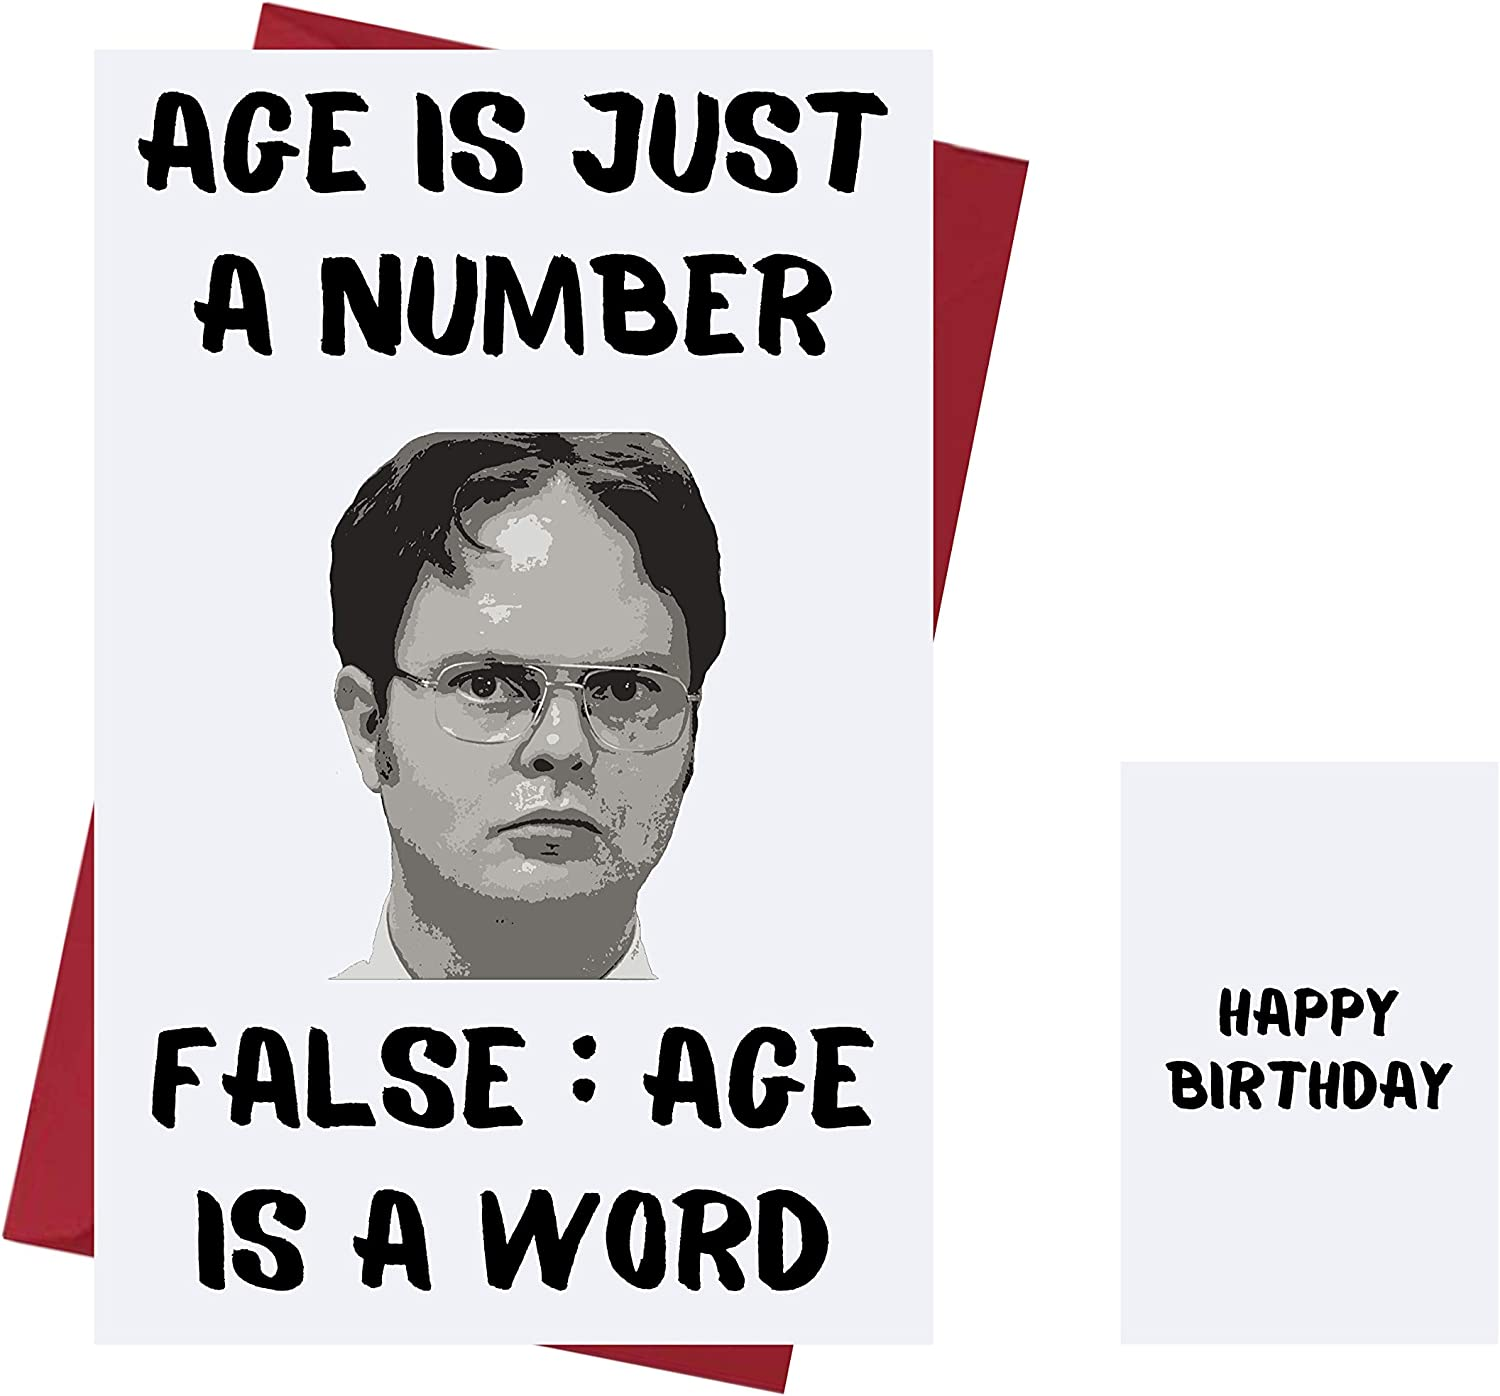 Funny Birthday Card The Office US – Dwight Schrute – Birthday Card Dwight Schrute – The Office TV Series Greeting Card – For Friends, Family, Lover, Etc. Who Love The Office TV Series – With Envelope